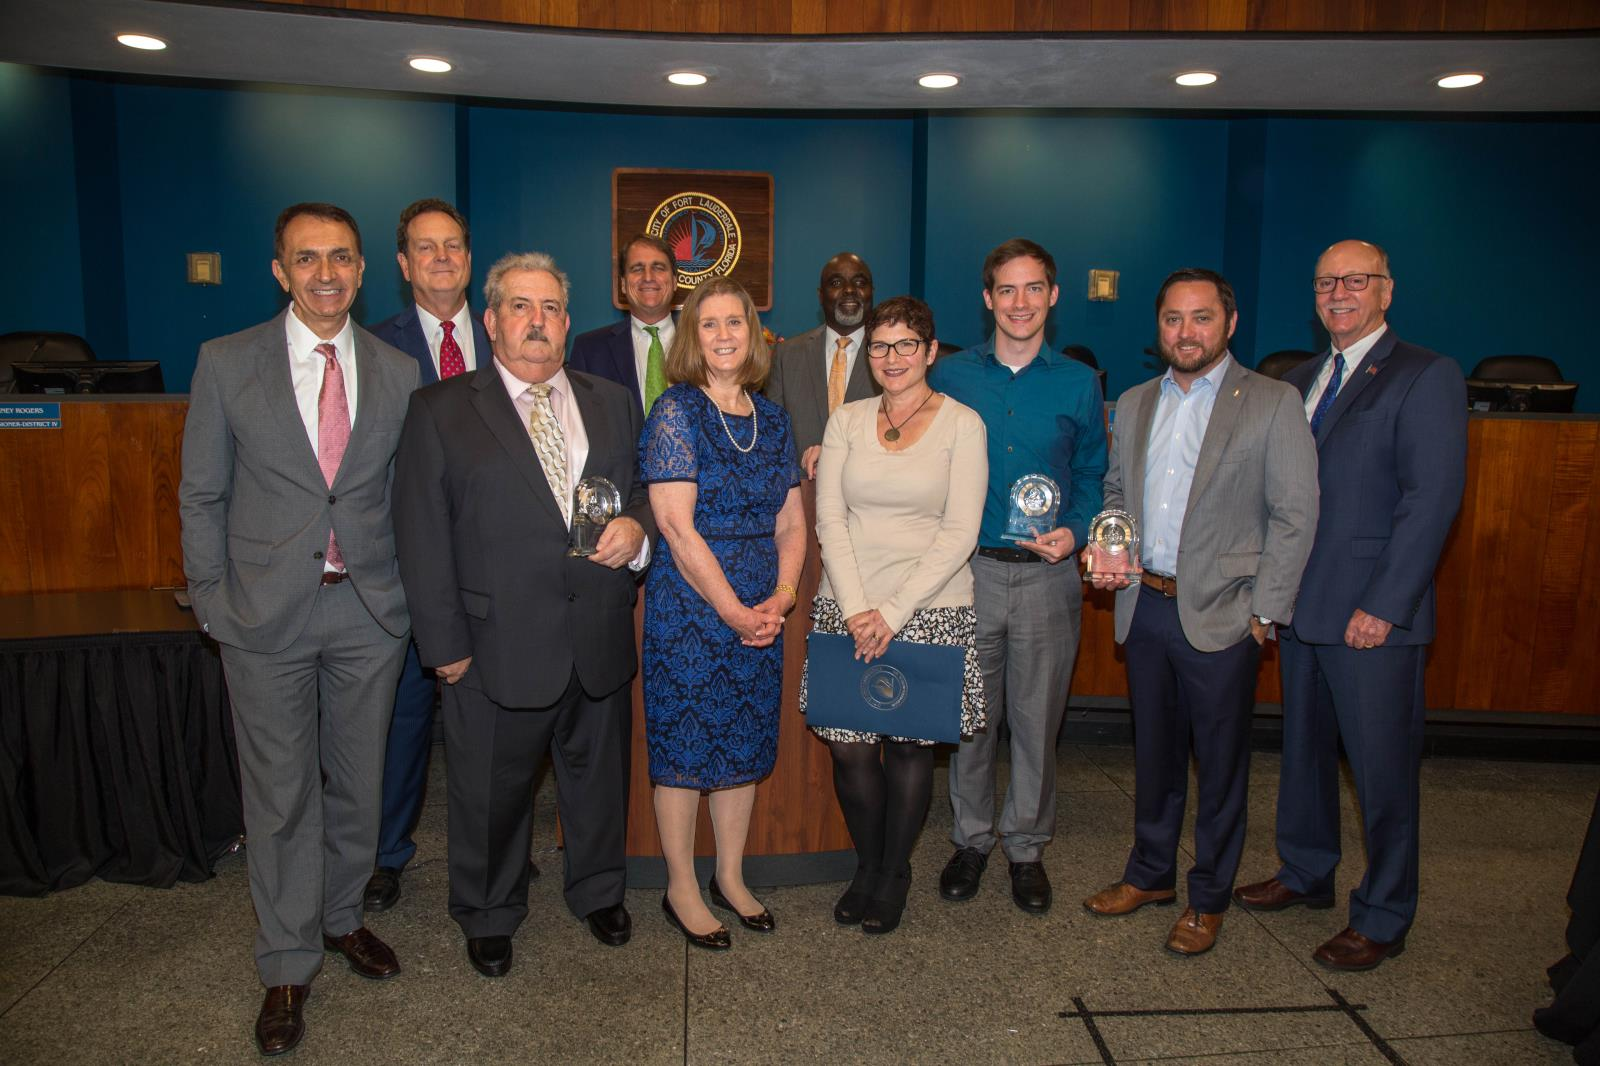 Fort Lauderdale City Commission with the 2017 Citizens Recognition Awards honorees